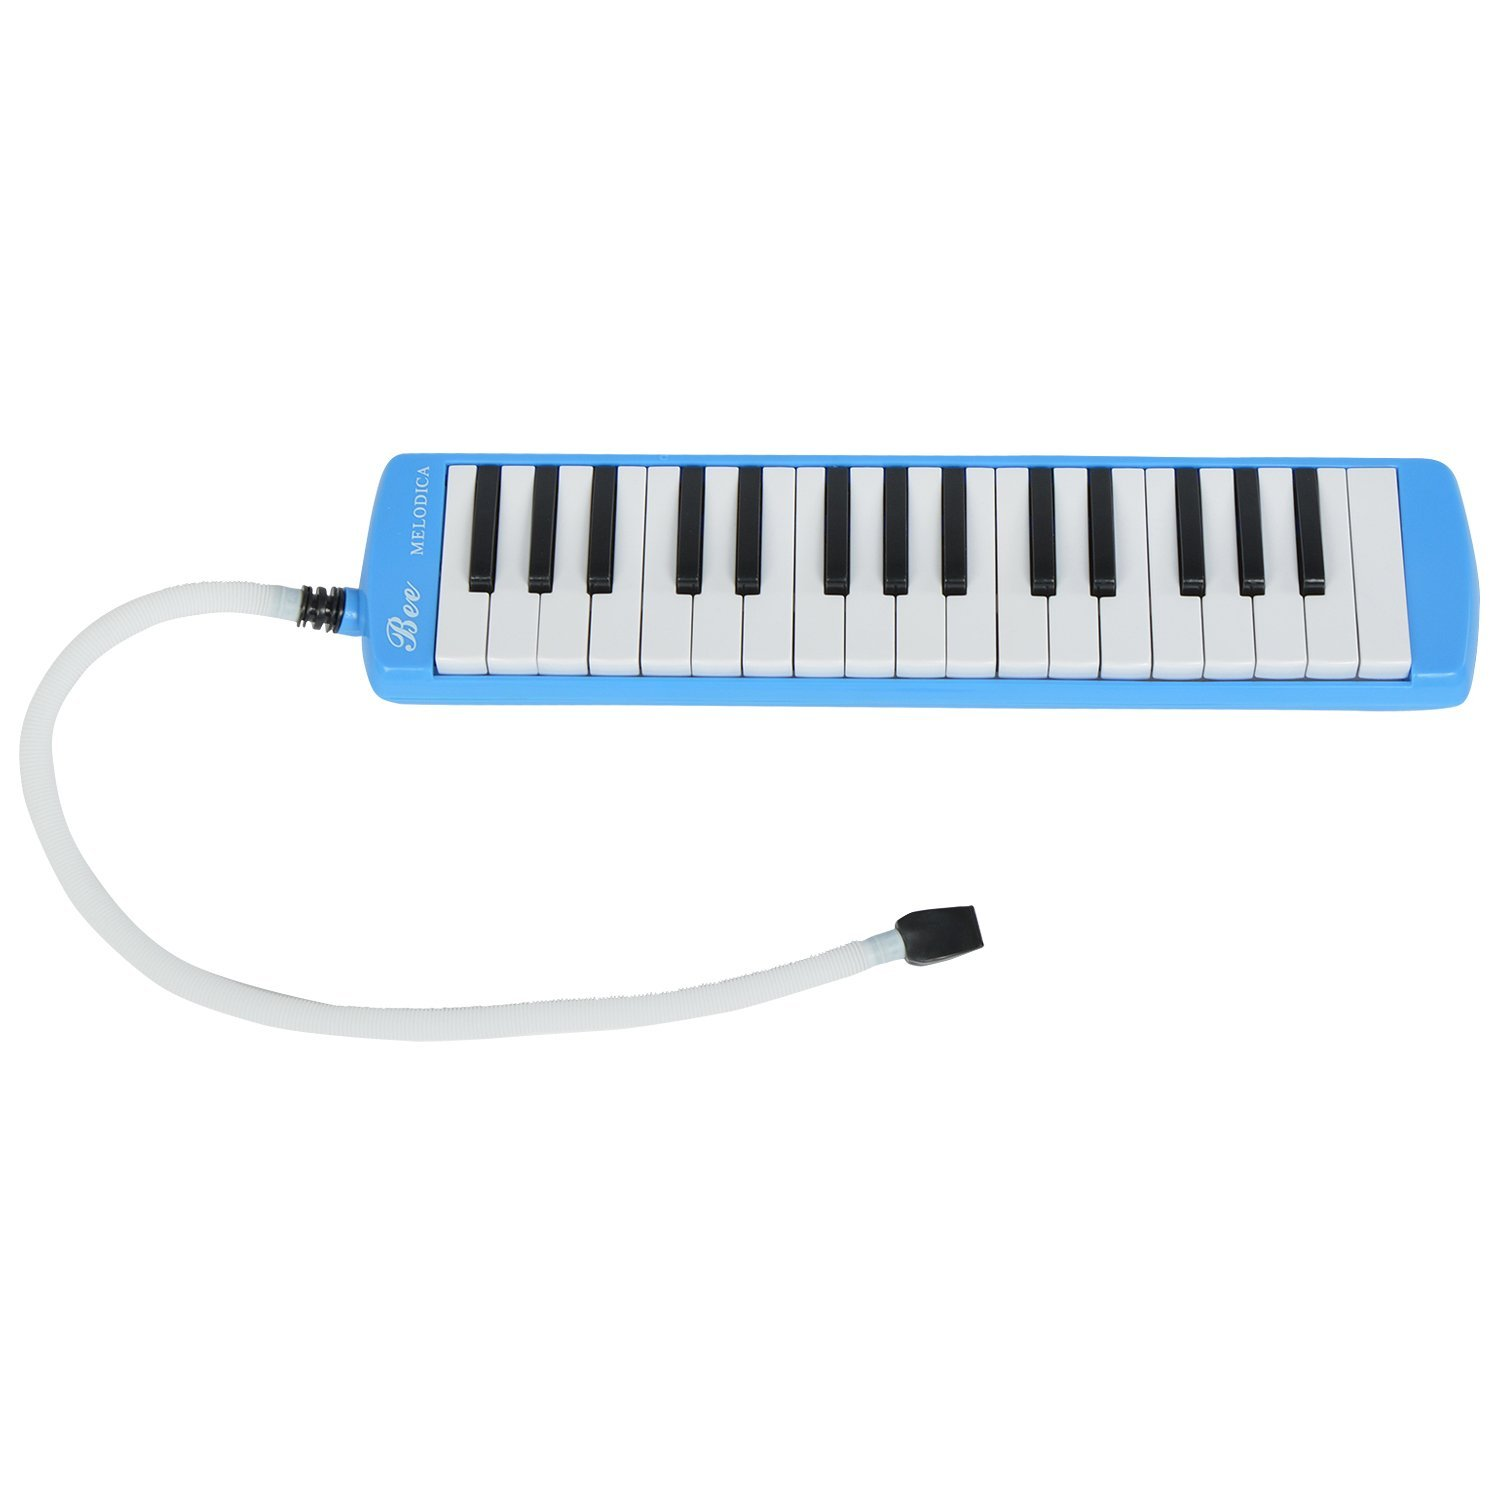 Infinity Ls Md 01 Melodica With 32Keys , Sky Blue